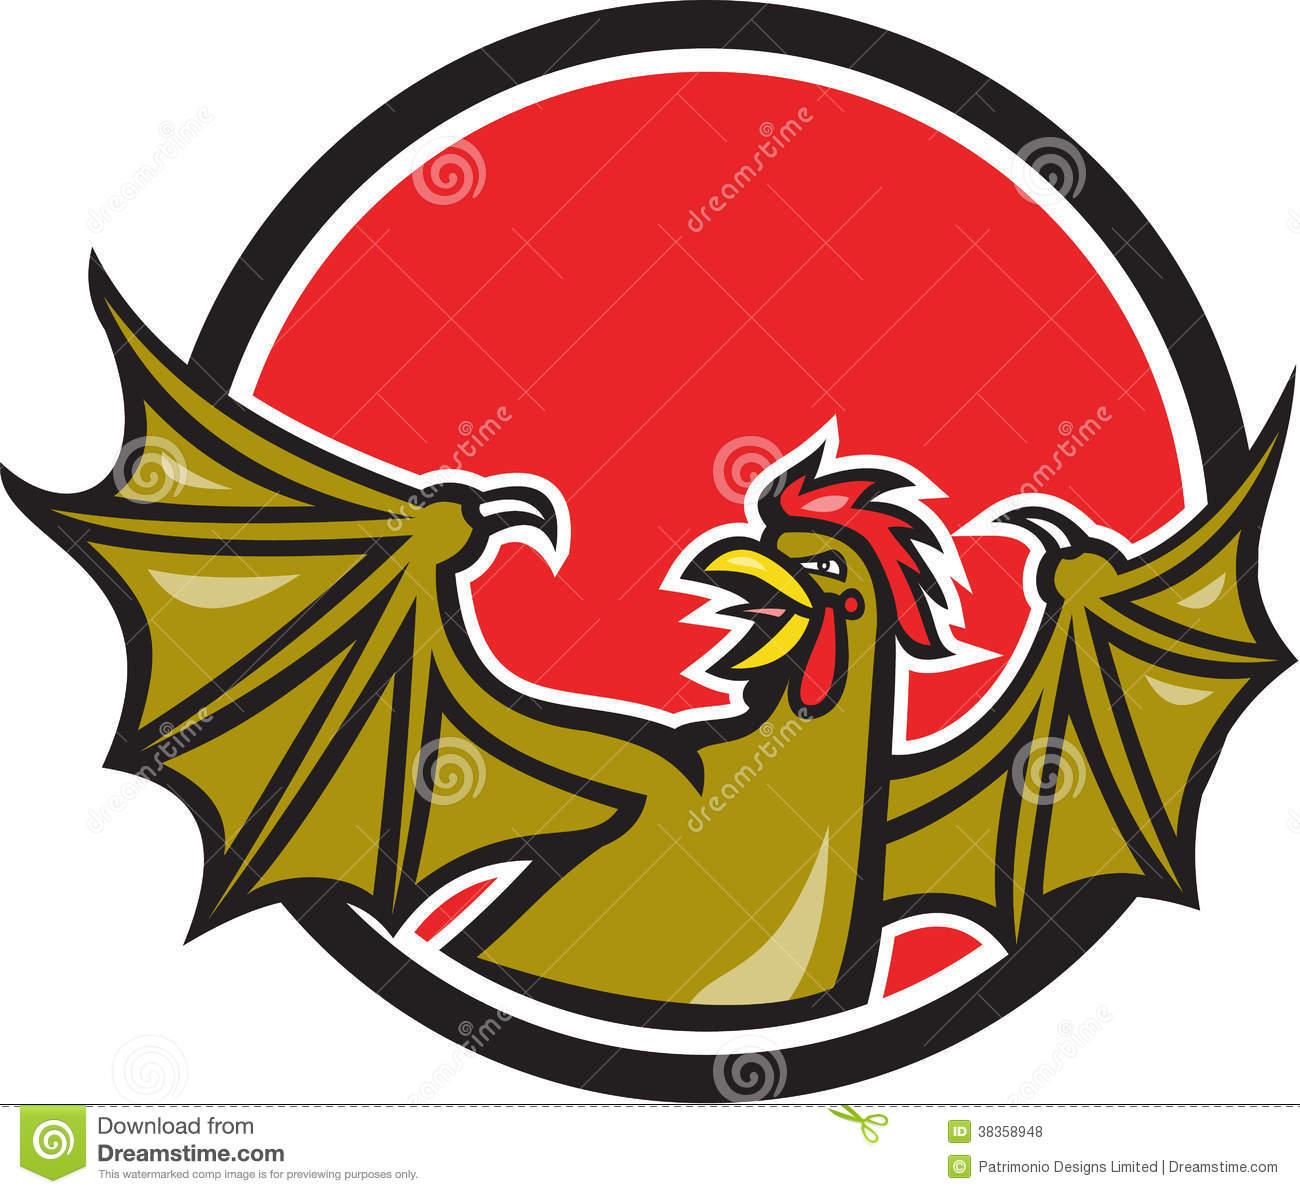 Basilisk Monster Cartoon Illustration Royalty Free Stock Images.